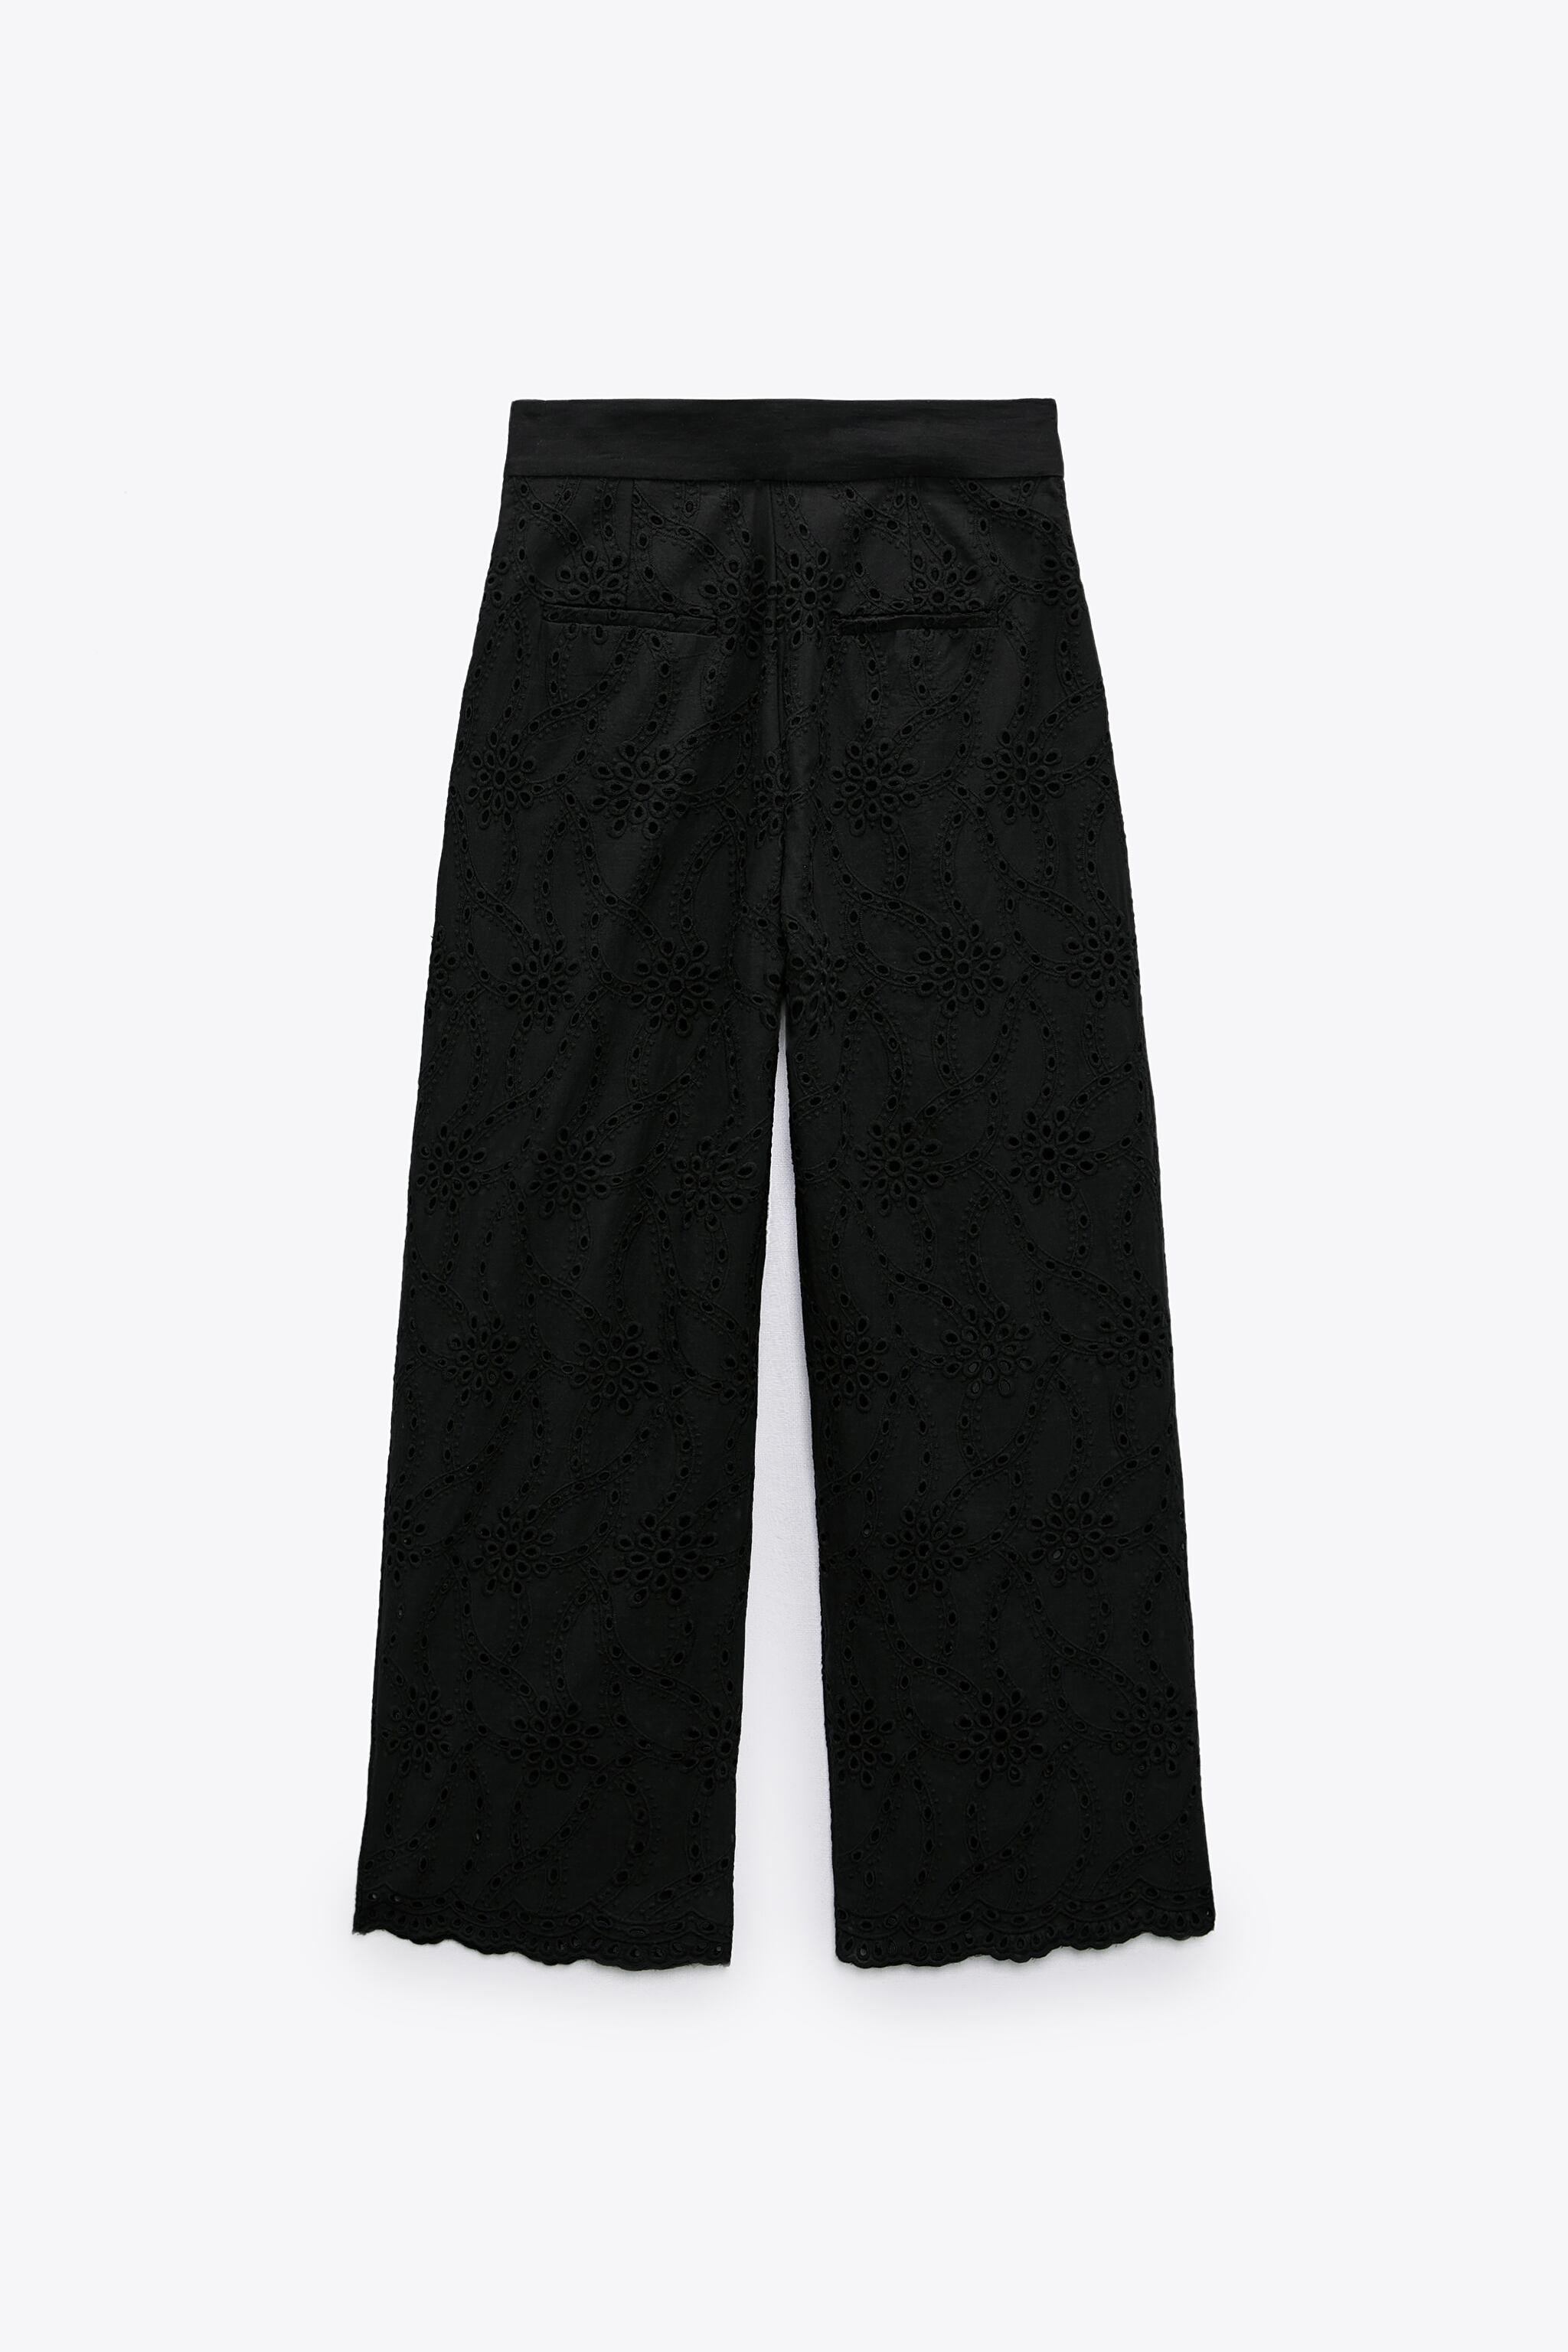 PANTS WITH OPENWORK EMBROIDERY 6